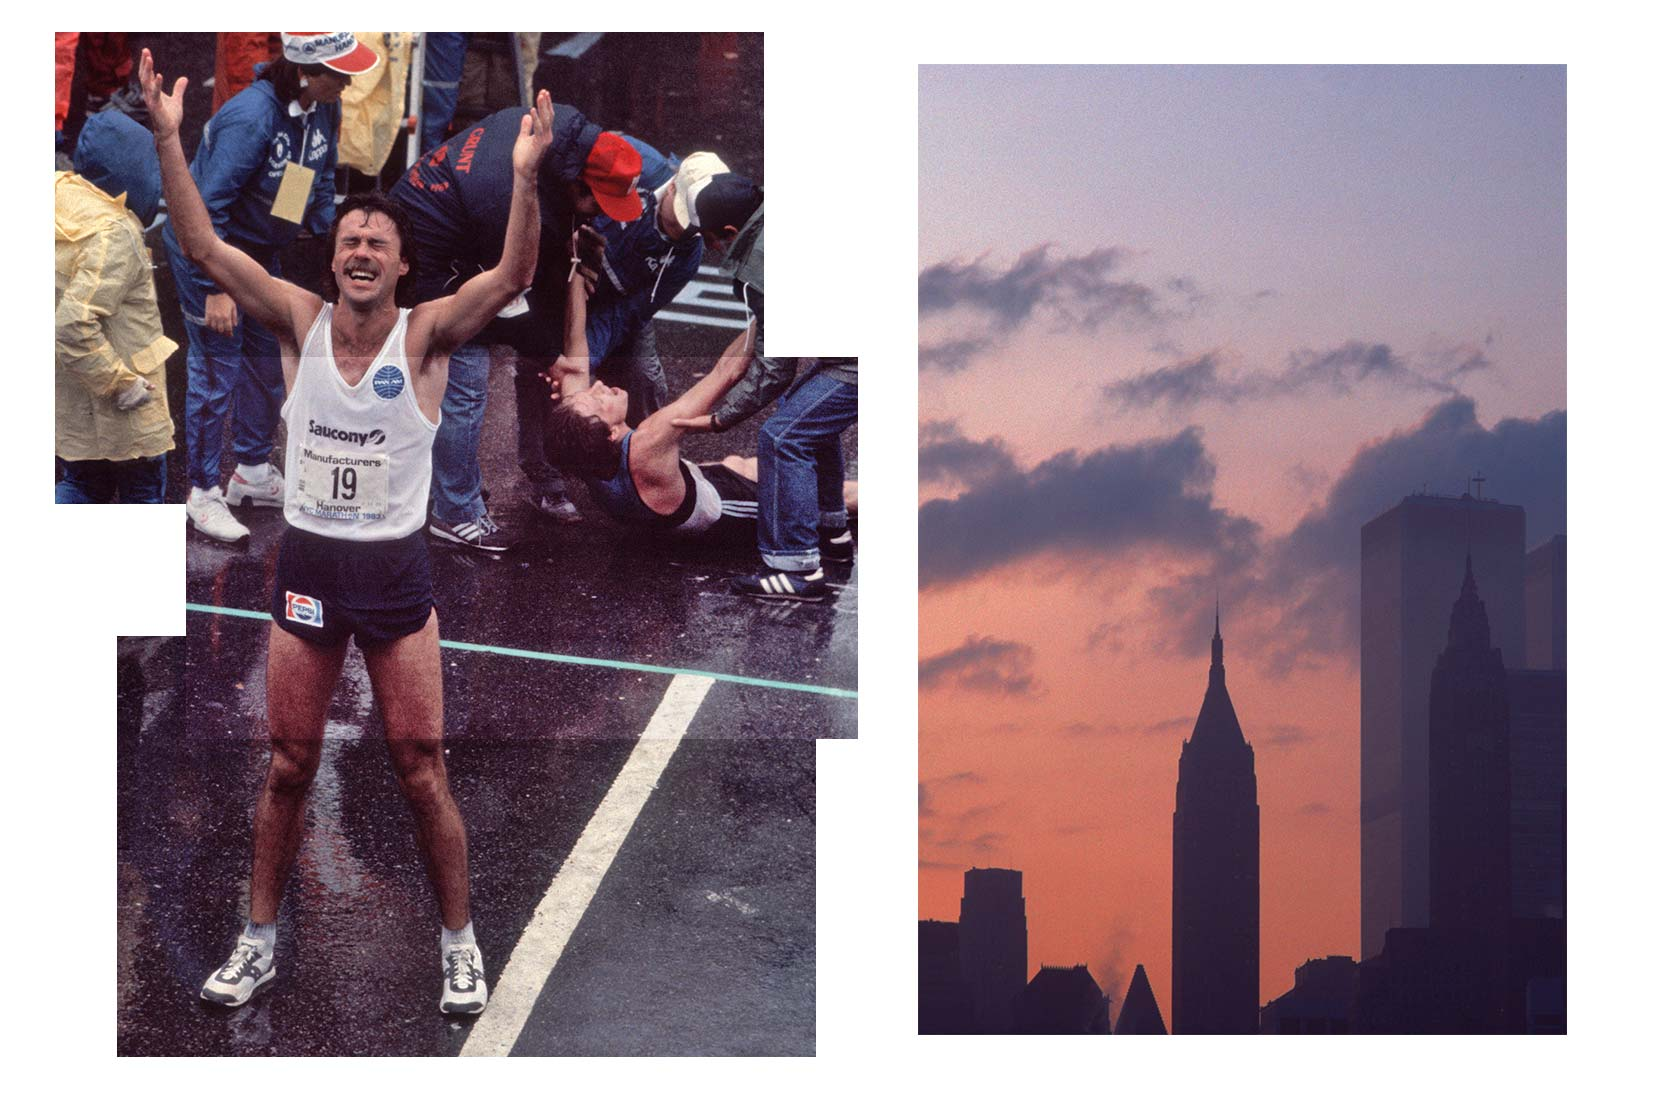 Newzealenderen Rod Dixon vinner NY-maraton, New York, New York, 23. oktober 1983. (Foto Allan Tannenbaum / Getty Images)<br /><br/>Lower Manhattan i skumringen med tvillingtårnene World Trade Center, New York City, 1983. (Foto Alfred Gescheidt / Getty Images)